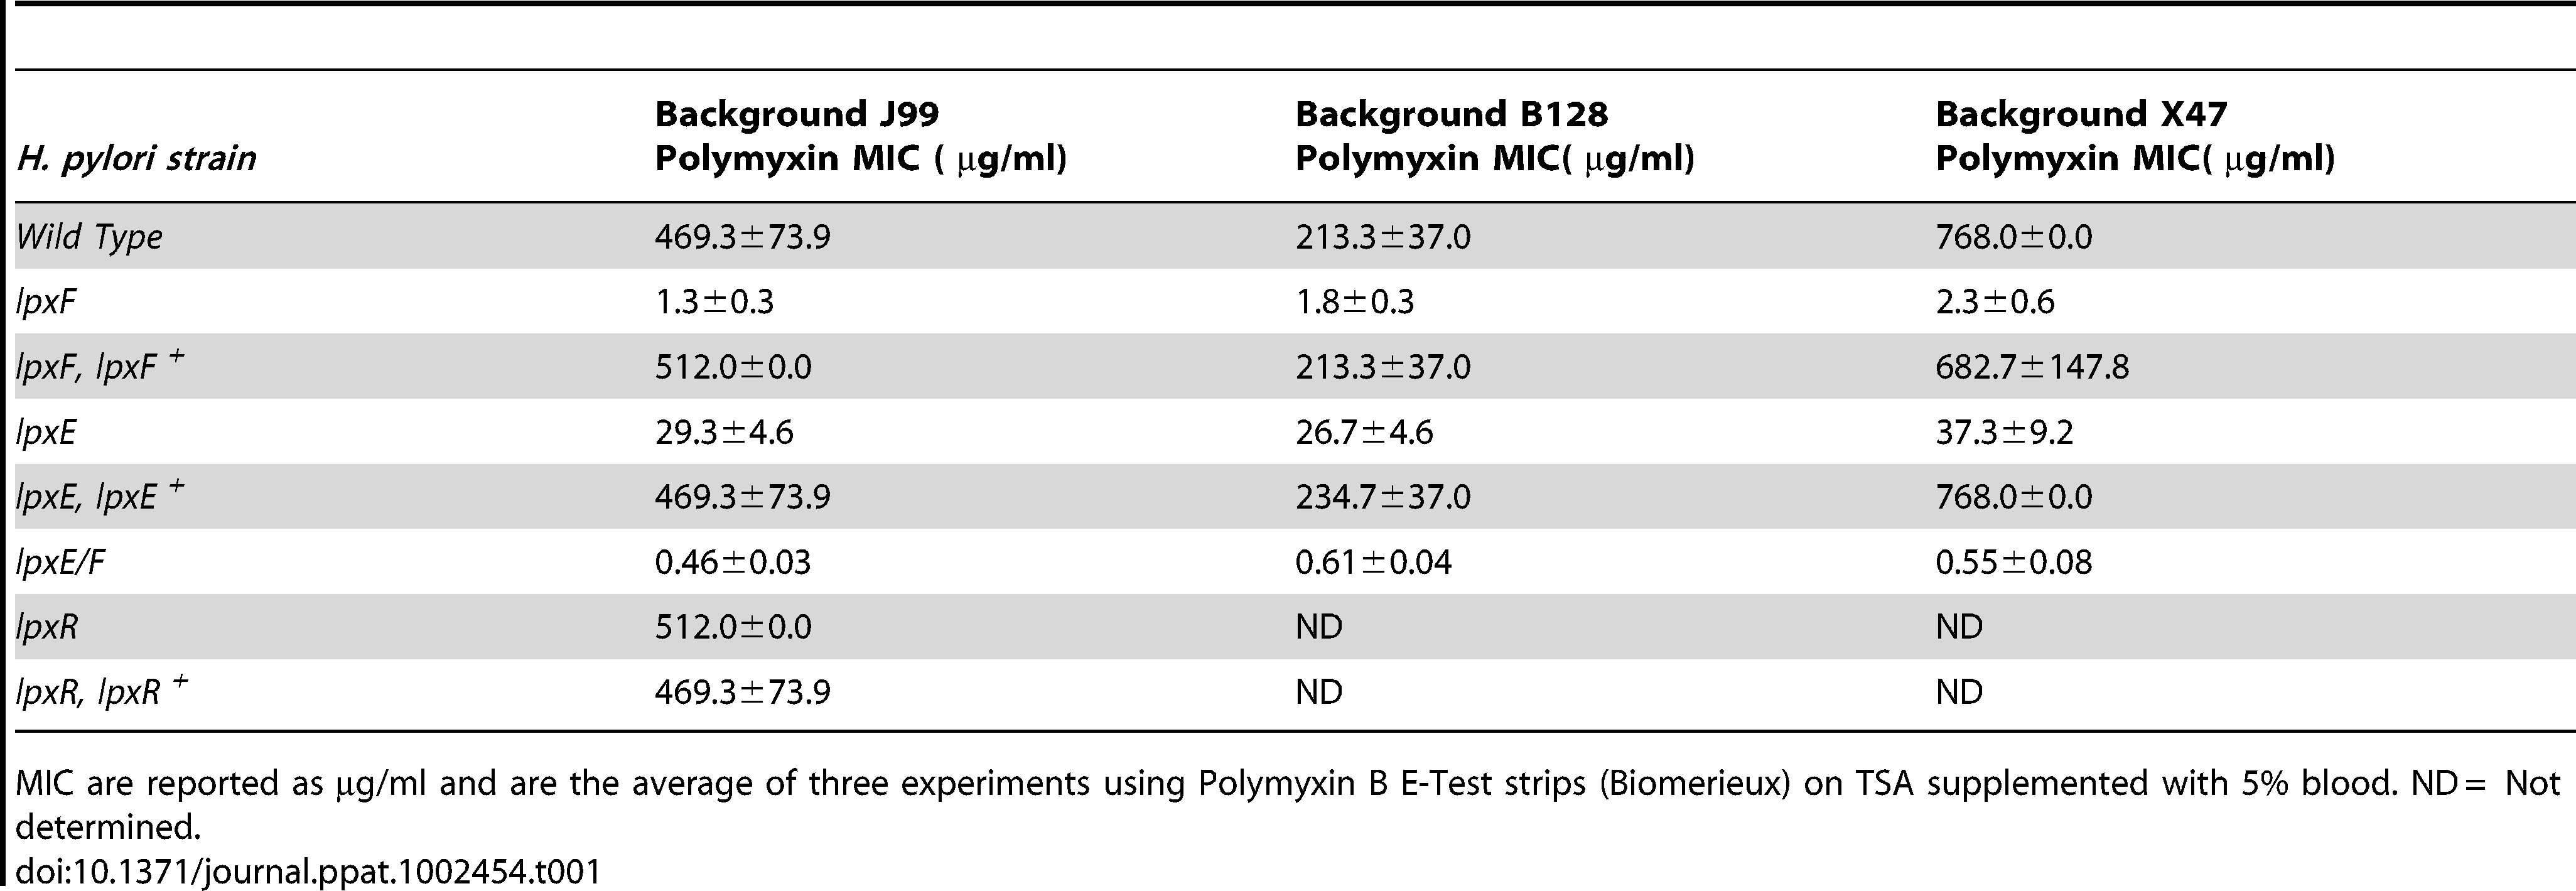 Minimal Inhibitory Concentrations (MIC) of polymyxin against <i>H. pylori</i> strains.